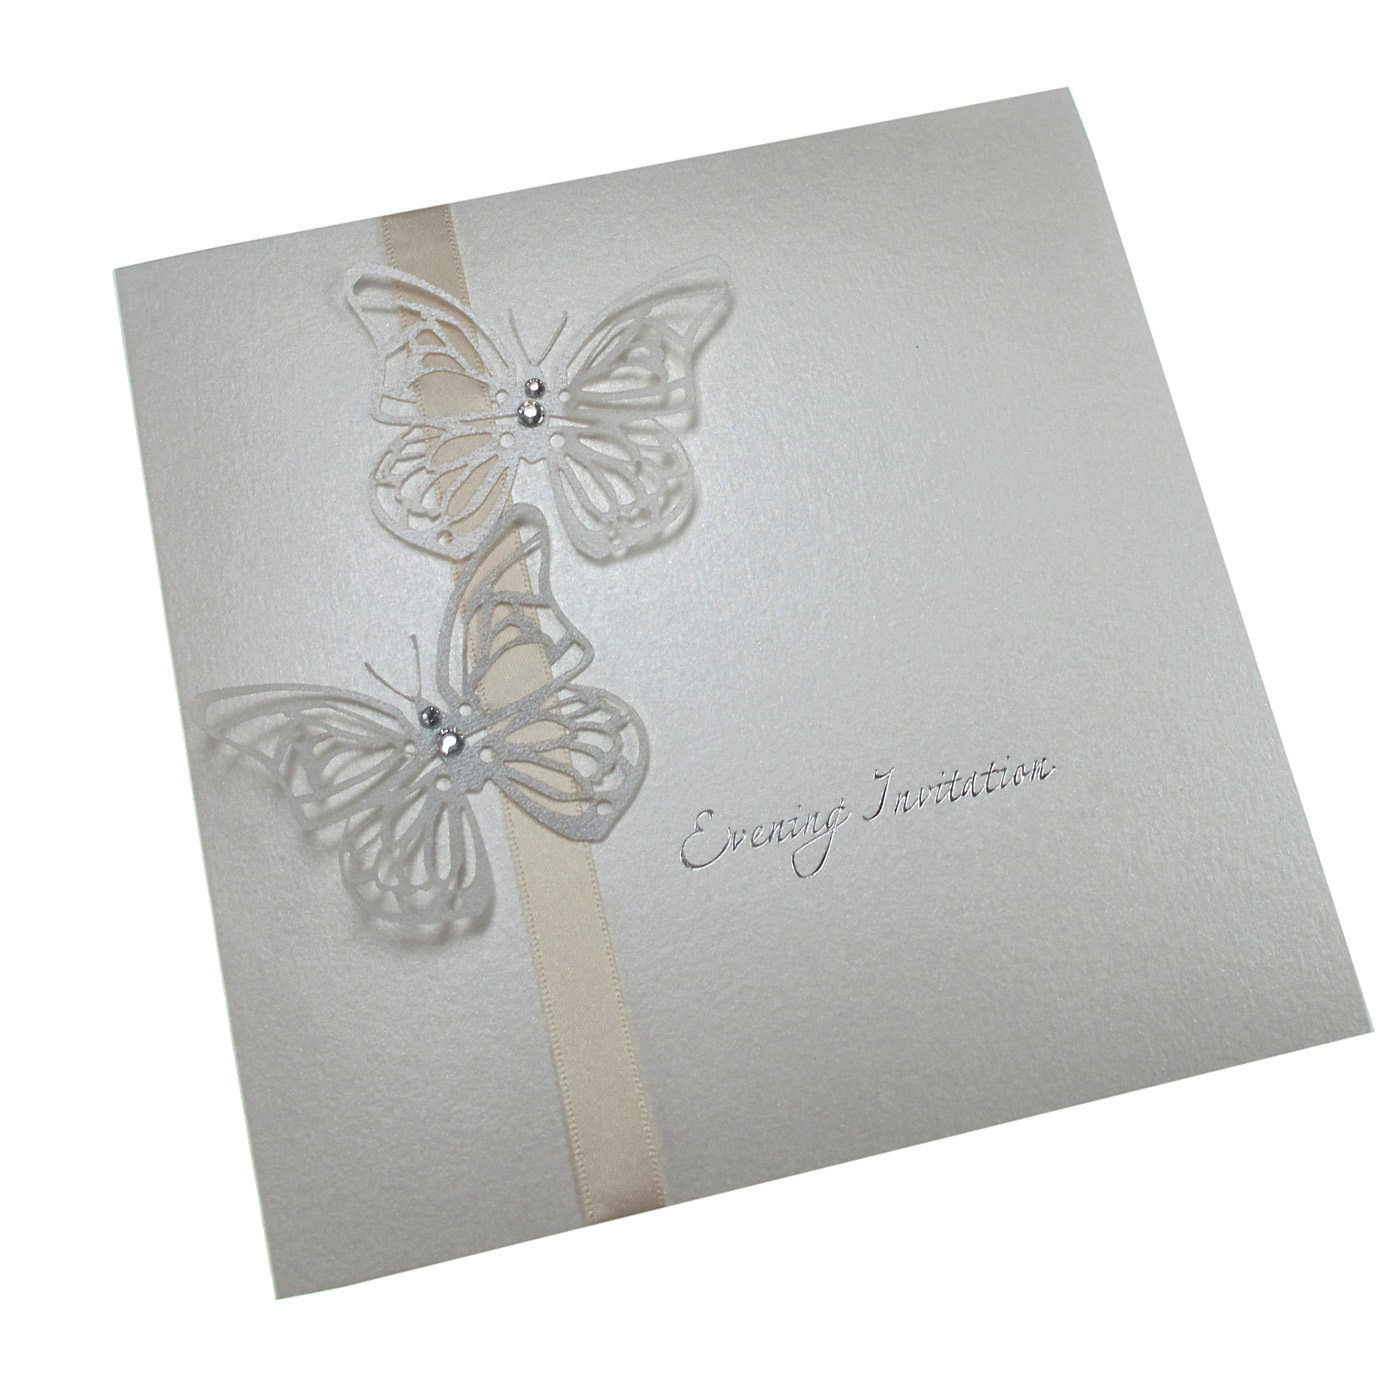 Butterfly Themed Wedding Invitations: The Handcrafted Card Company Ltd: Laser Cut Butterfly